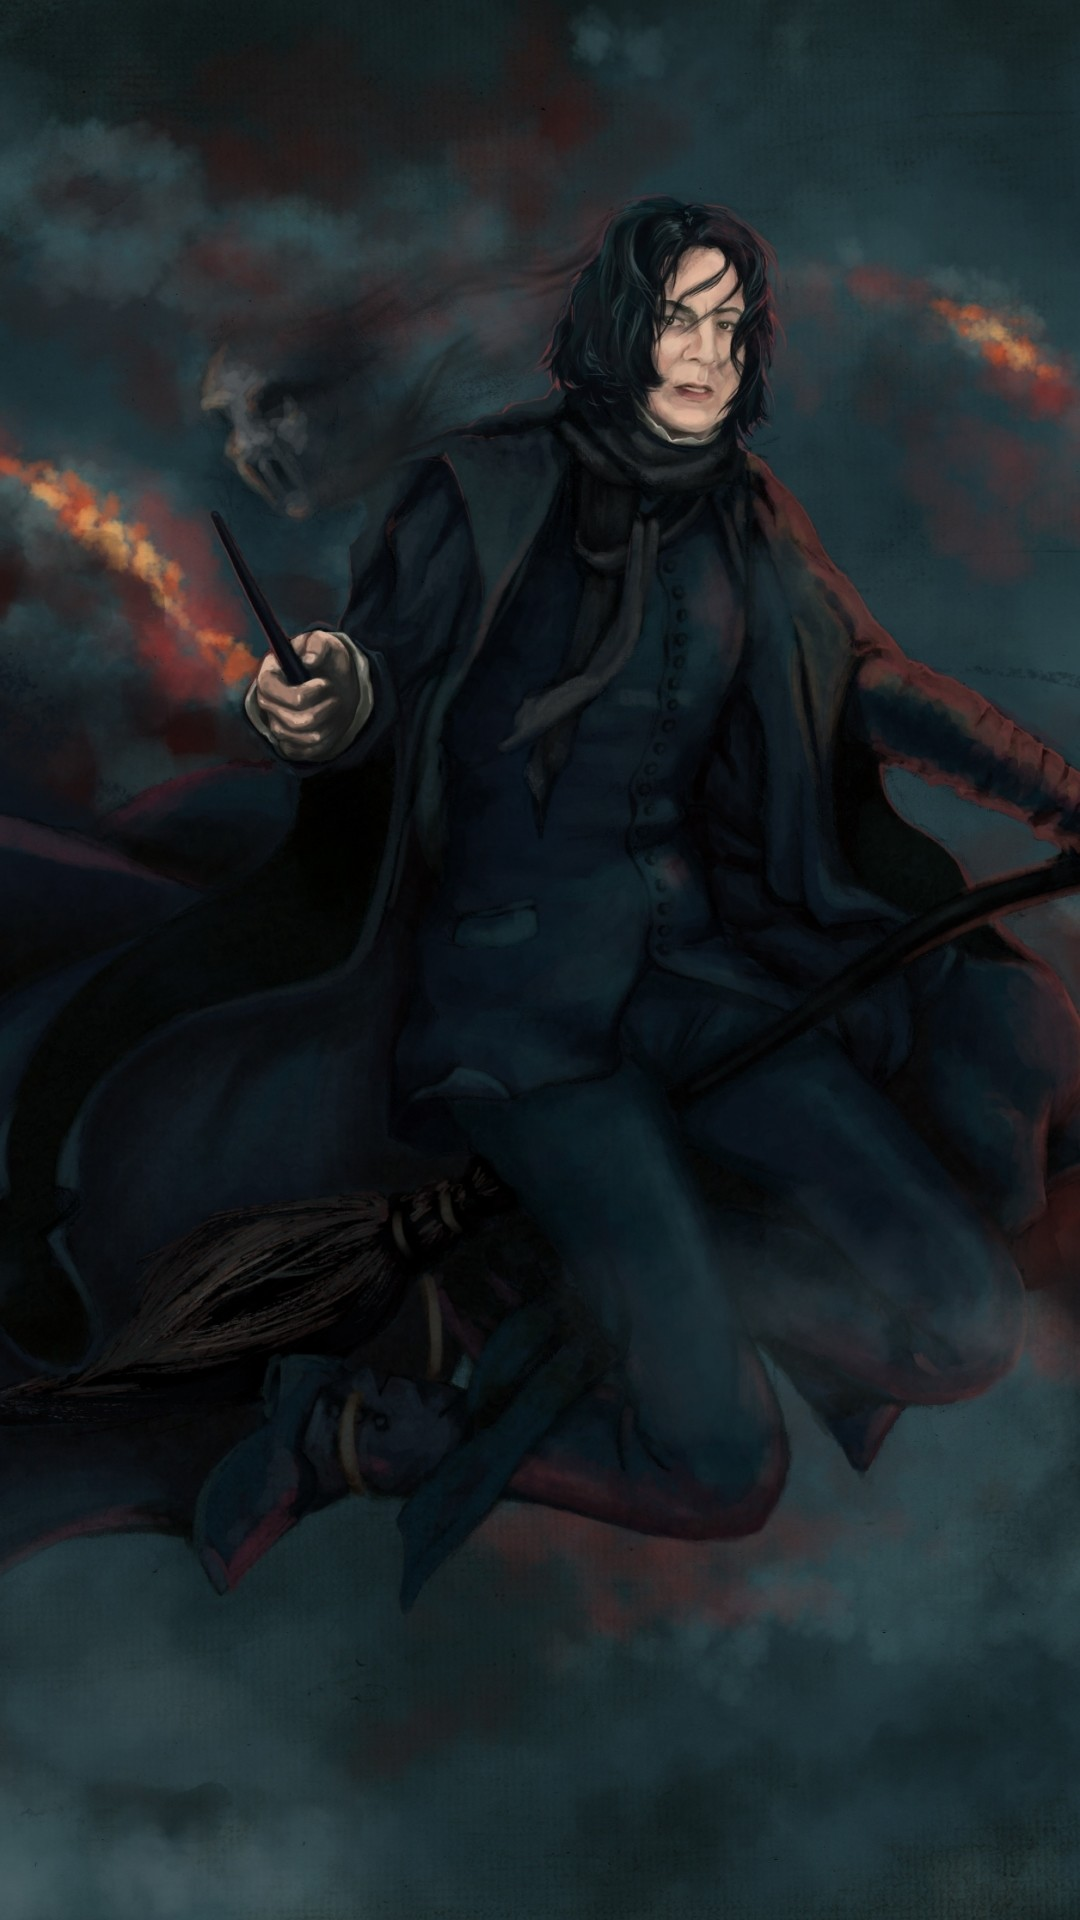 Beautiful Wallpaper Harry Potter Android Phone - 632265  Pic_36760.jpg